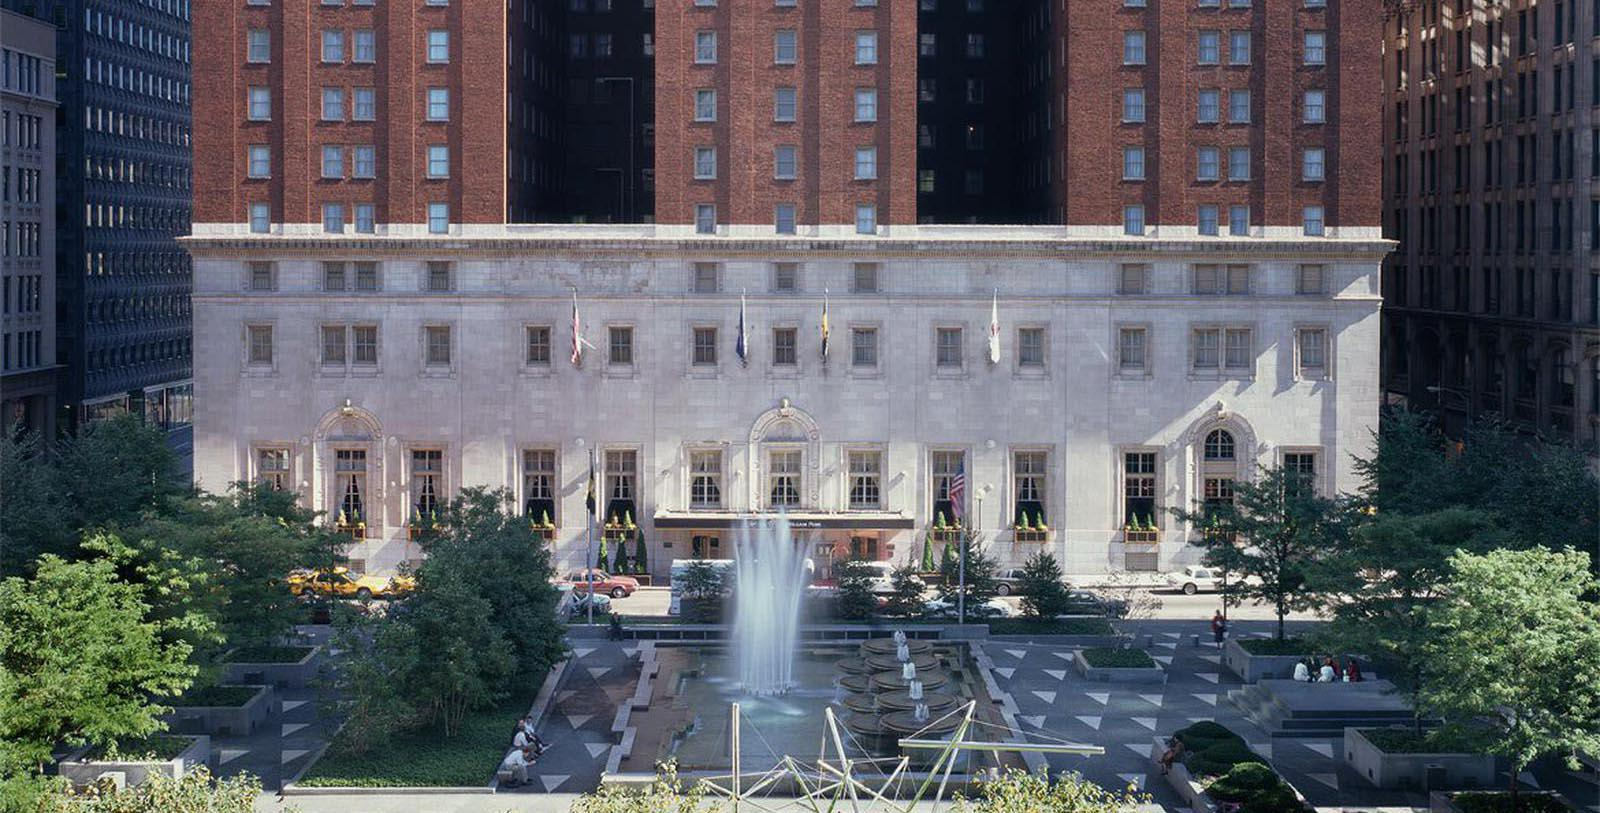 Image of Exterior & Fountain, Omni William Penn Hotel, Pittsburgh, Pennsylvania, 1916, Member of Historic Hotels of America, Overview